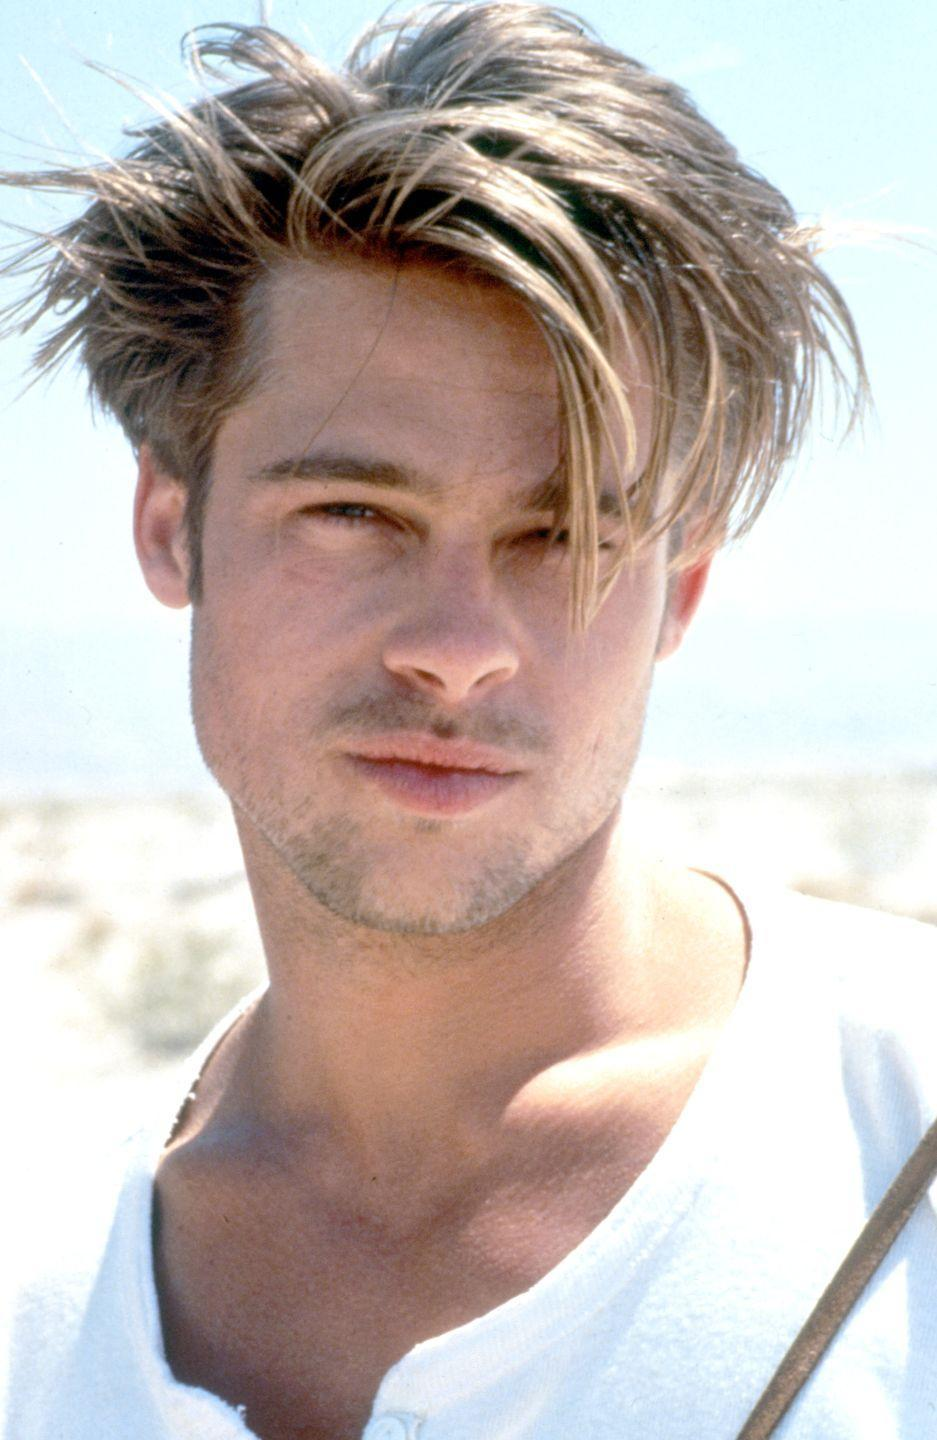 <p>A young Brad Pitt caught the world's attention in 1991 when he made his big screen debut as a hitchhiker in <em>Thelma and Louise.</em> It wasn't long after that the hunky actor began landing leading roles in films like <em>A </em><em>River Runs Through It</em>, <em>Legends of the Fall</em>, and <em>Interview With a </em><em>Vampire</em>.</p>